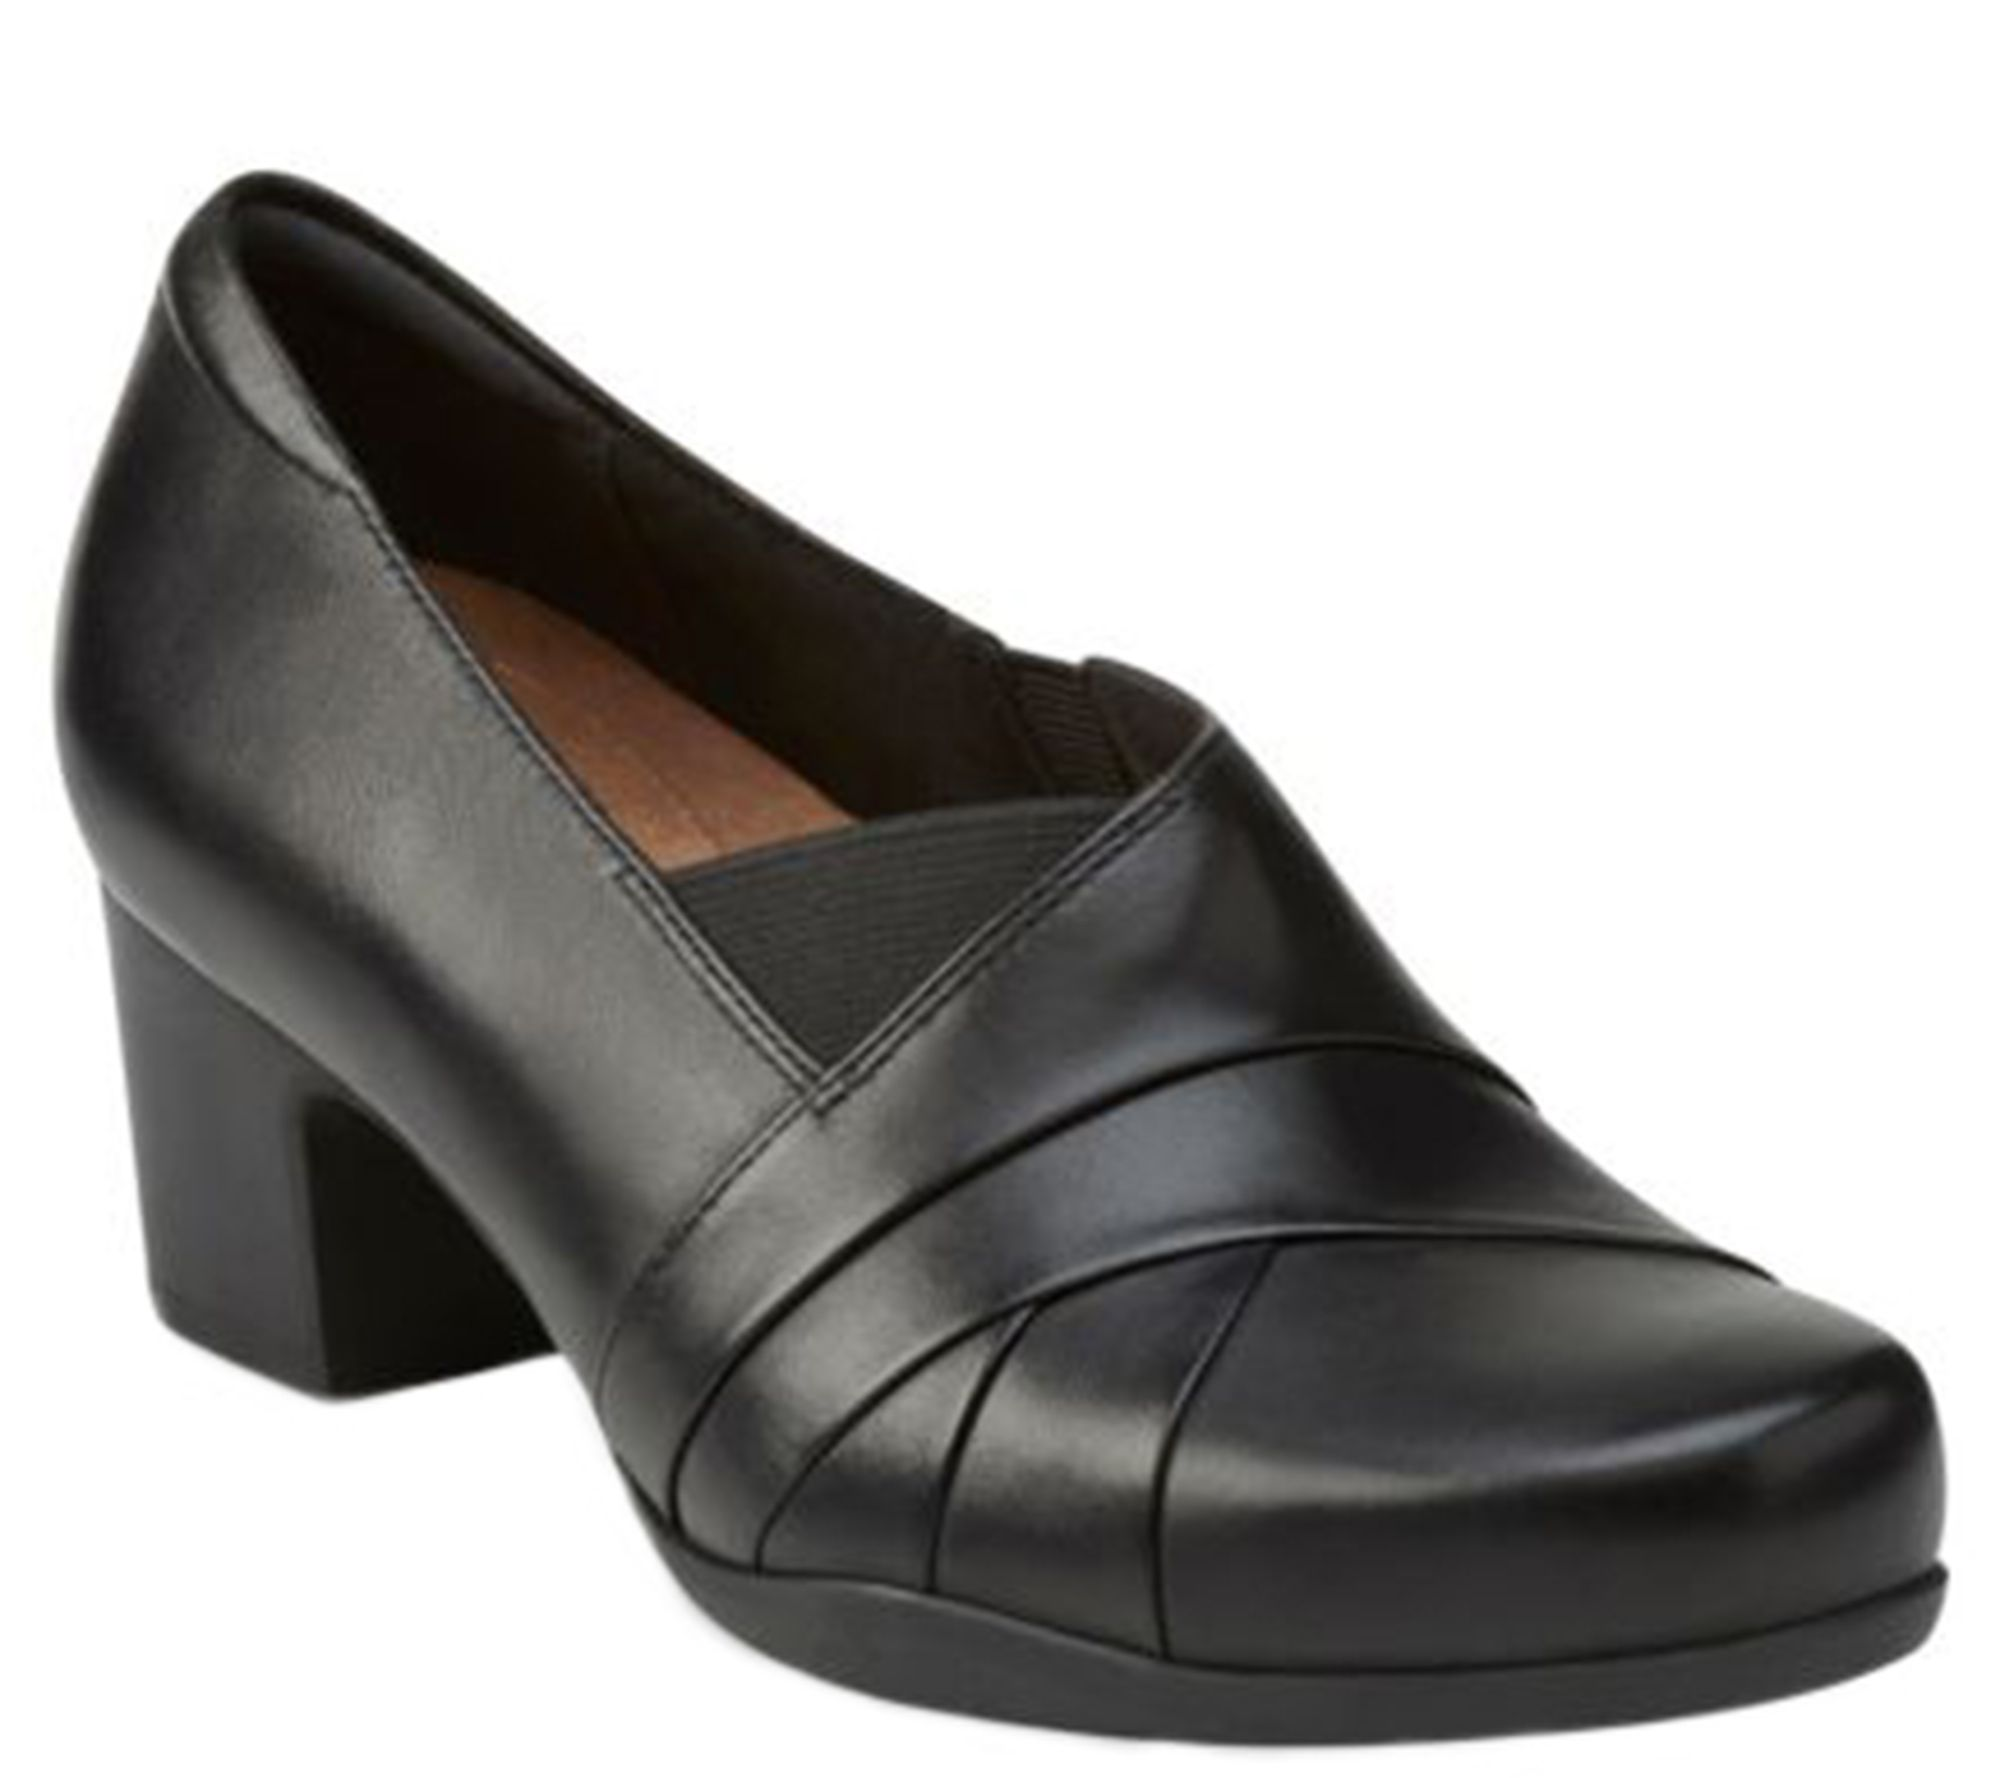 Ladies Work Shoes At Clarks